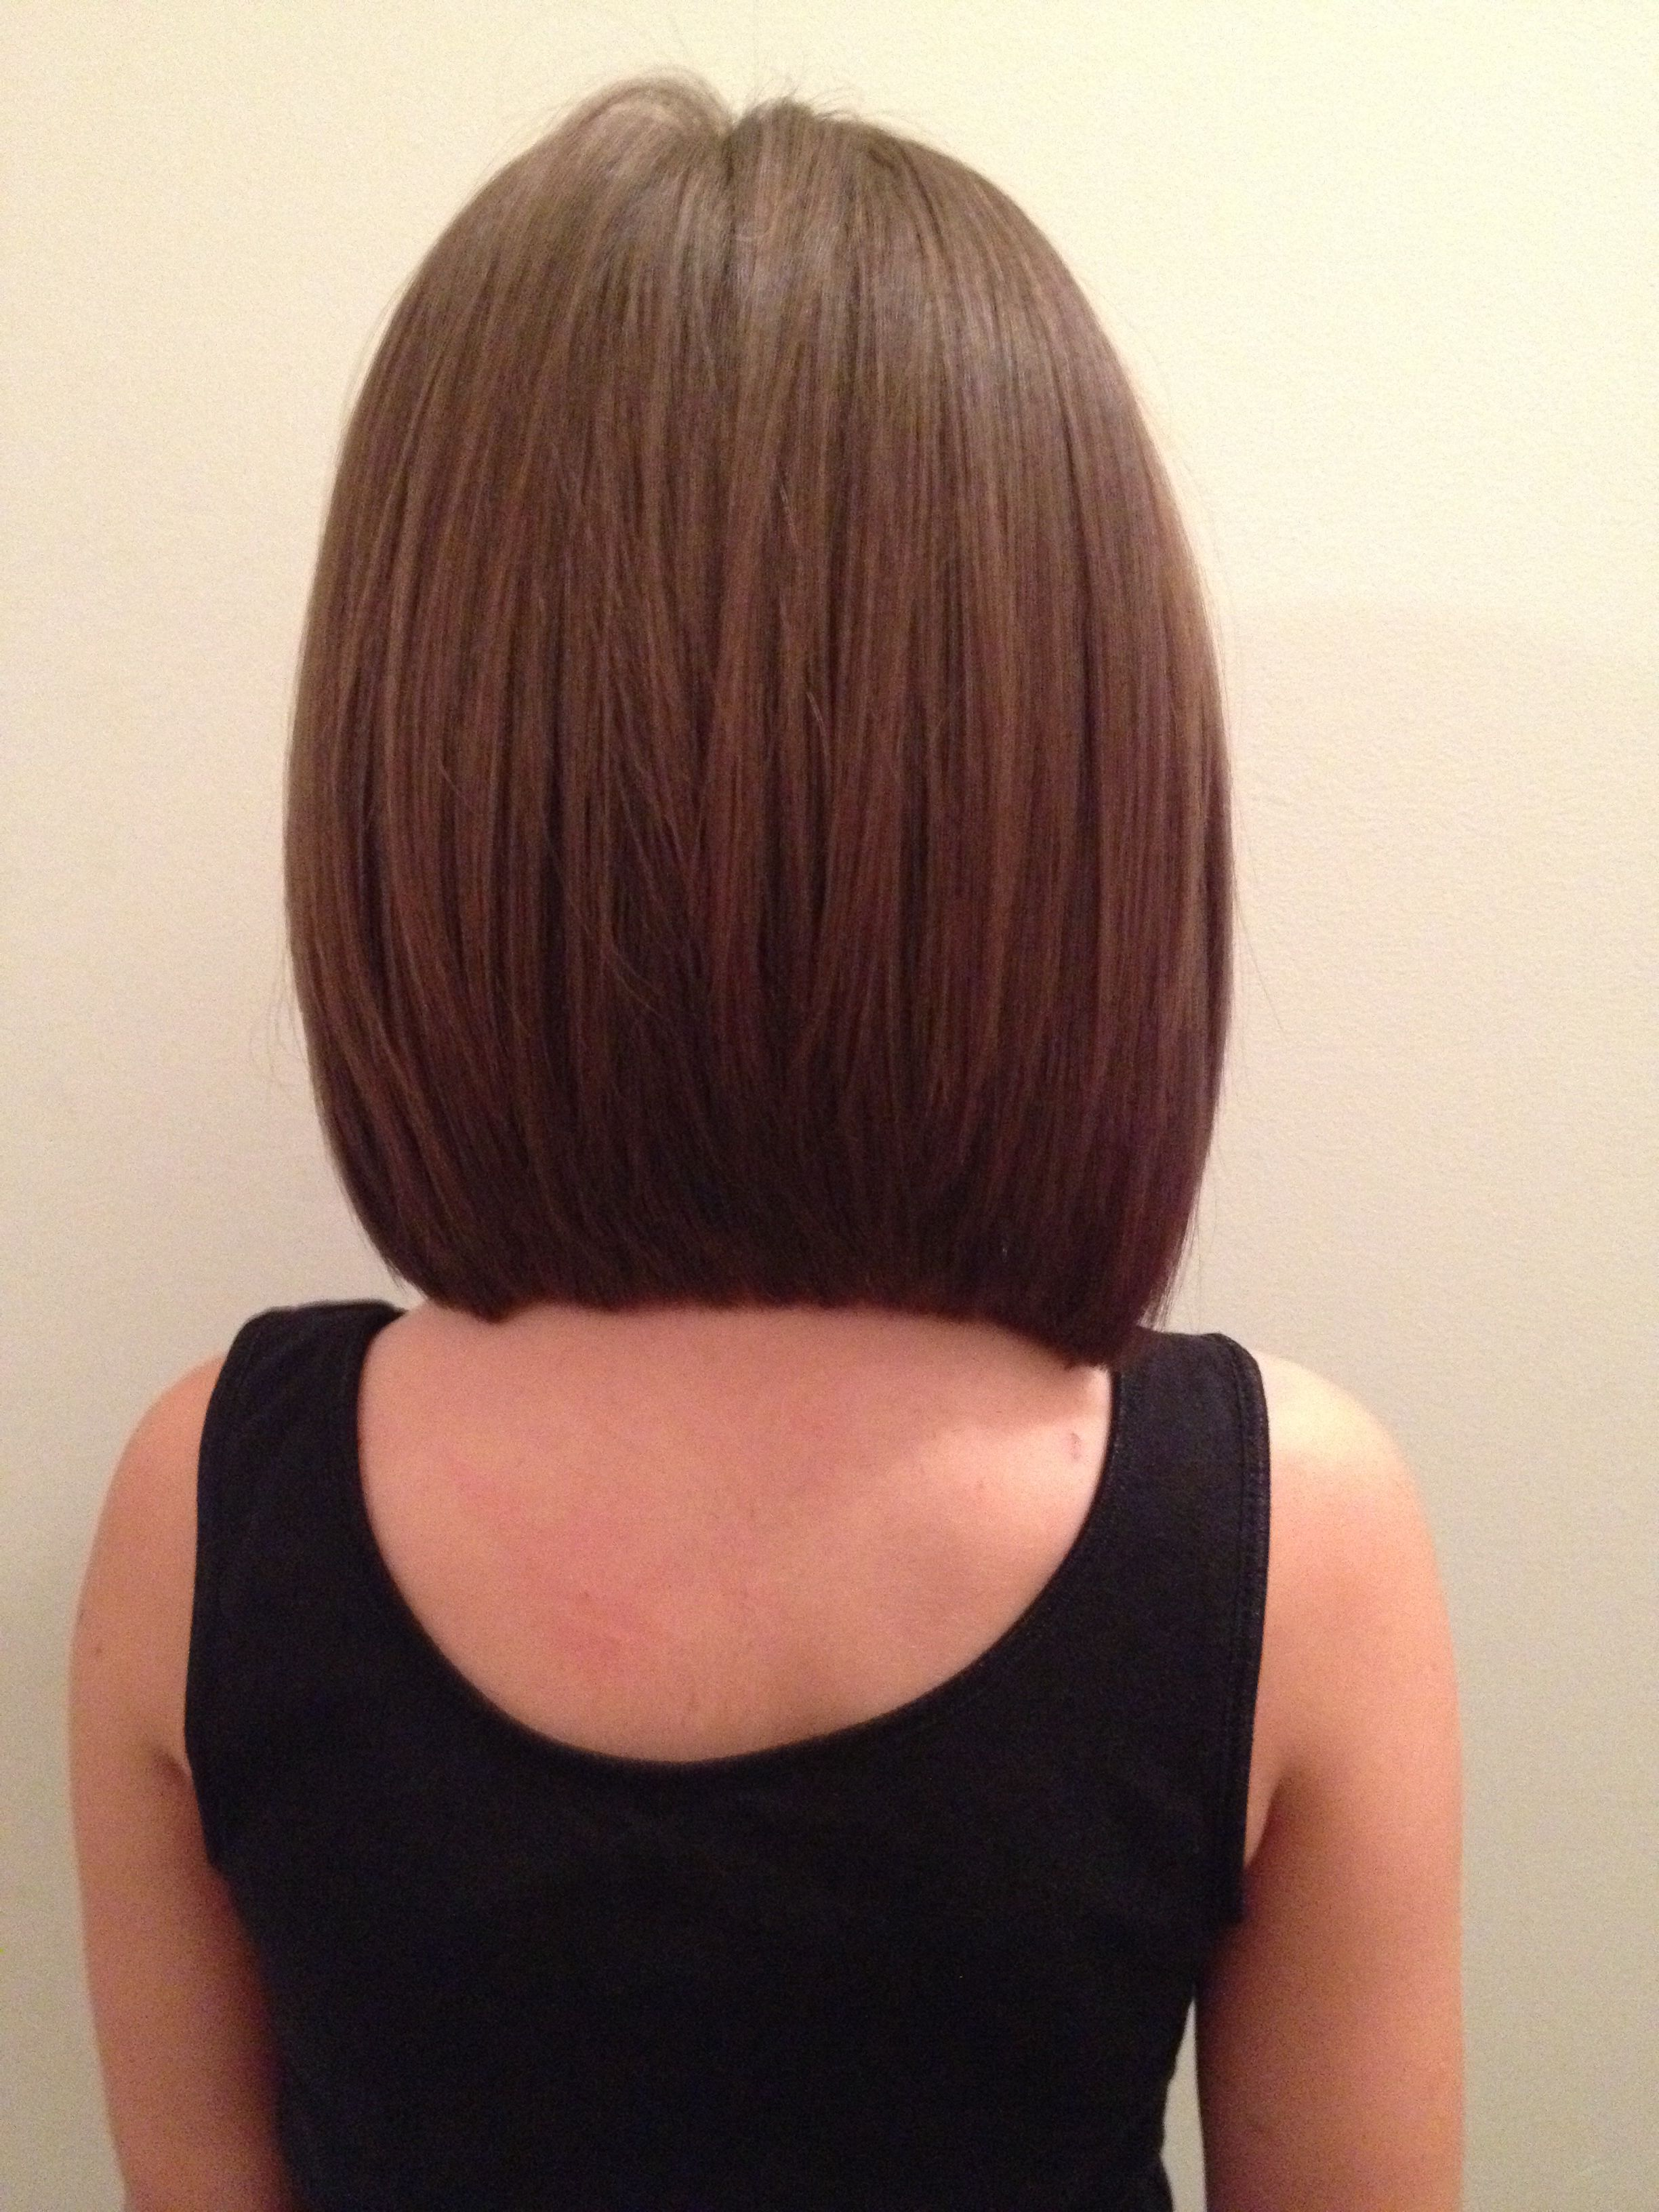 Long Angled Bob Back View Hair Styles Bob Haircut Back View Long Hair Styles